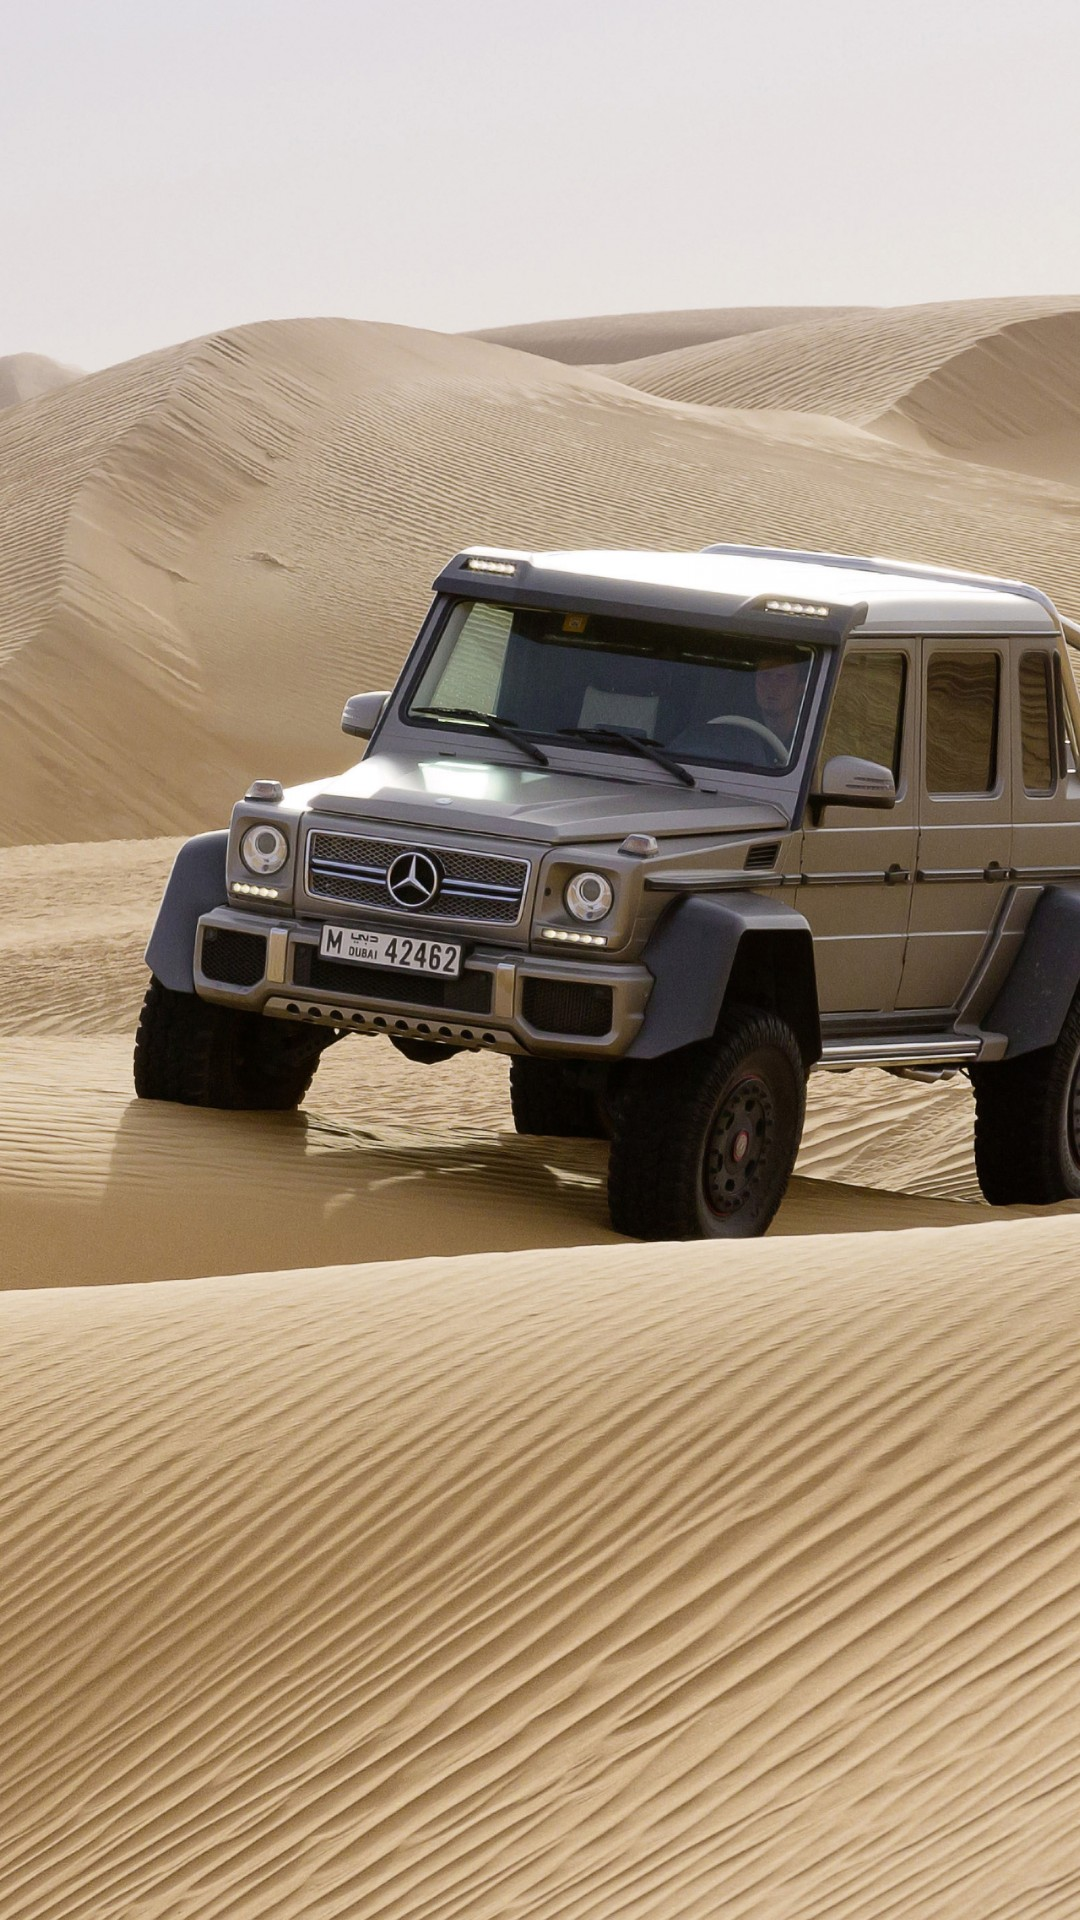 Rent A Suv >> Wallpaper Mercedes-Benz G 63 AMG 6x6, SUV, Mercedes, Brabus G 63 700, G-Class, off-road, luxury ...